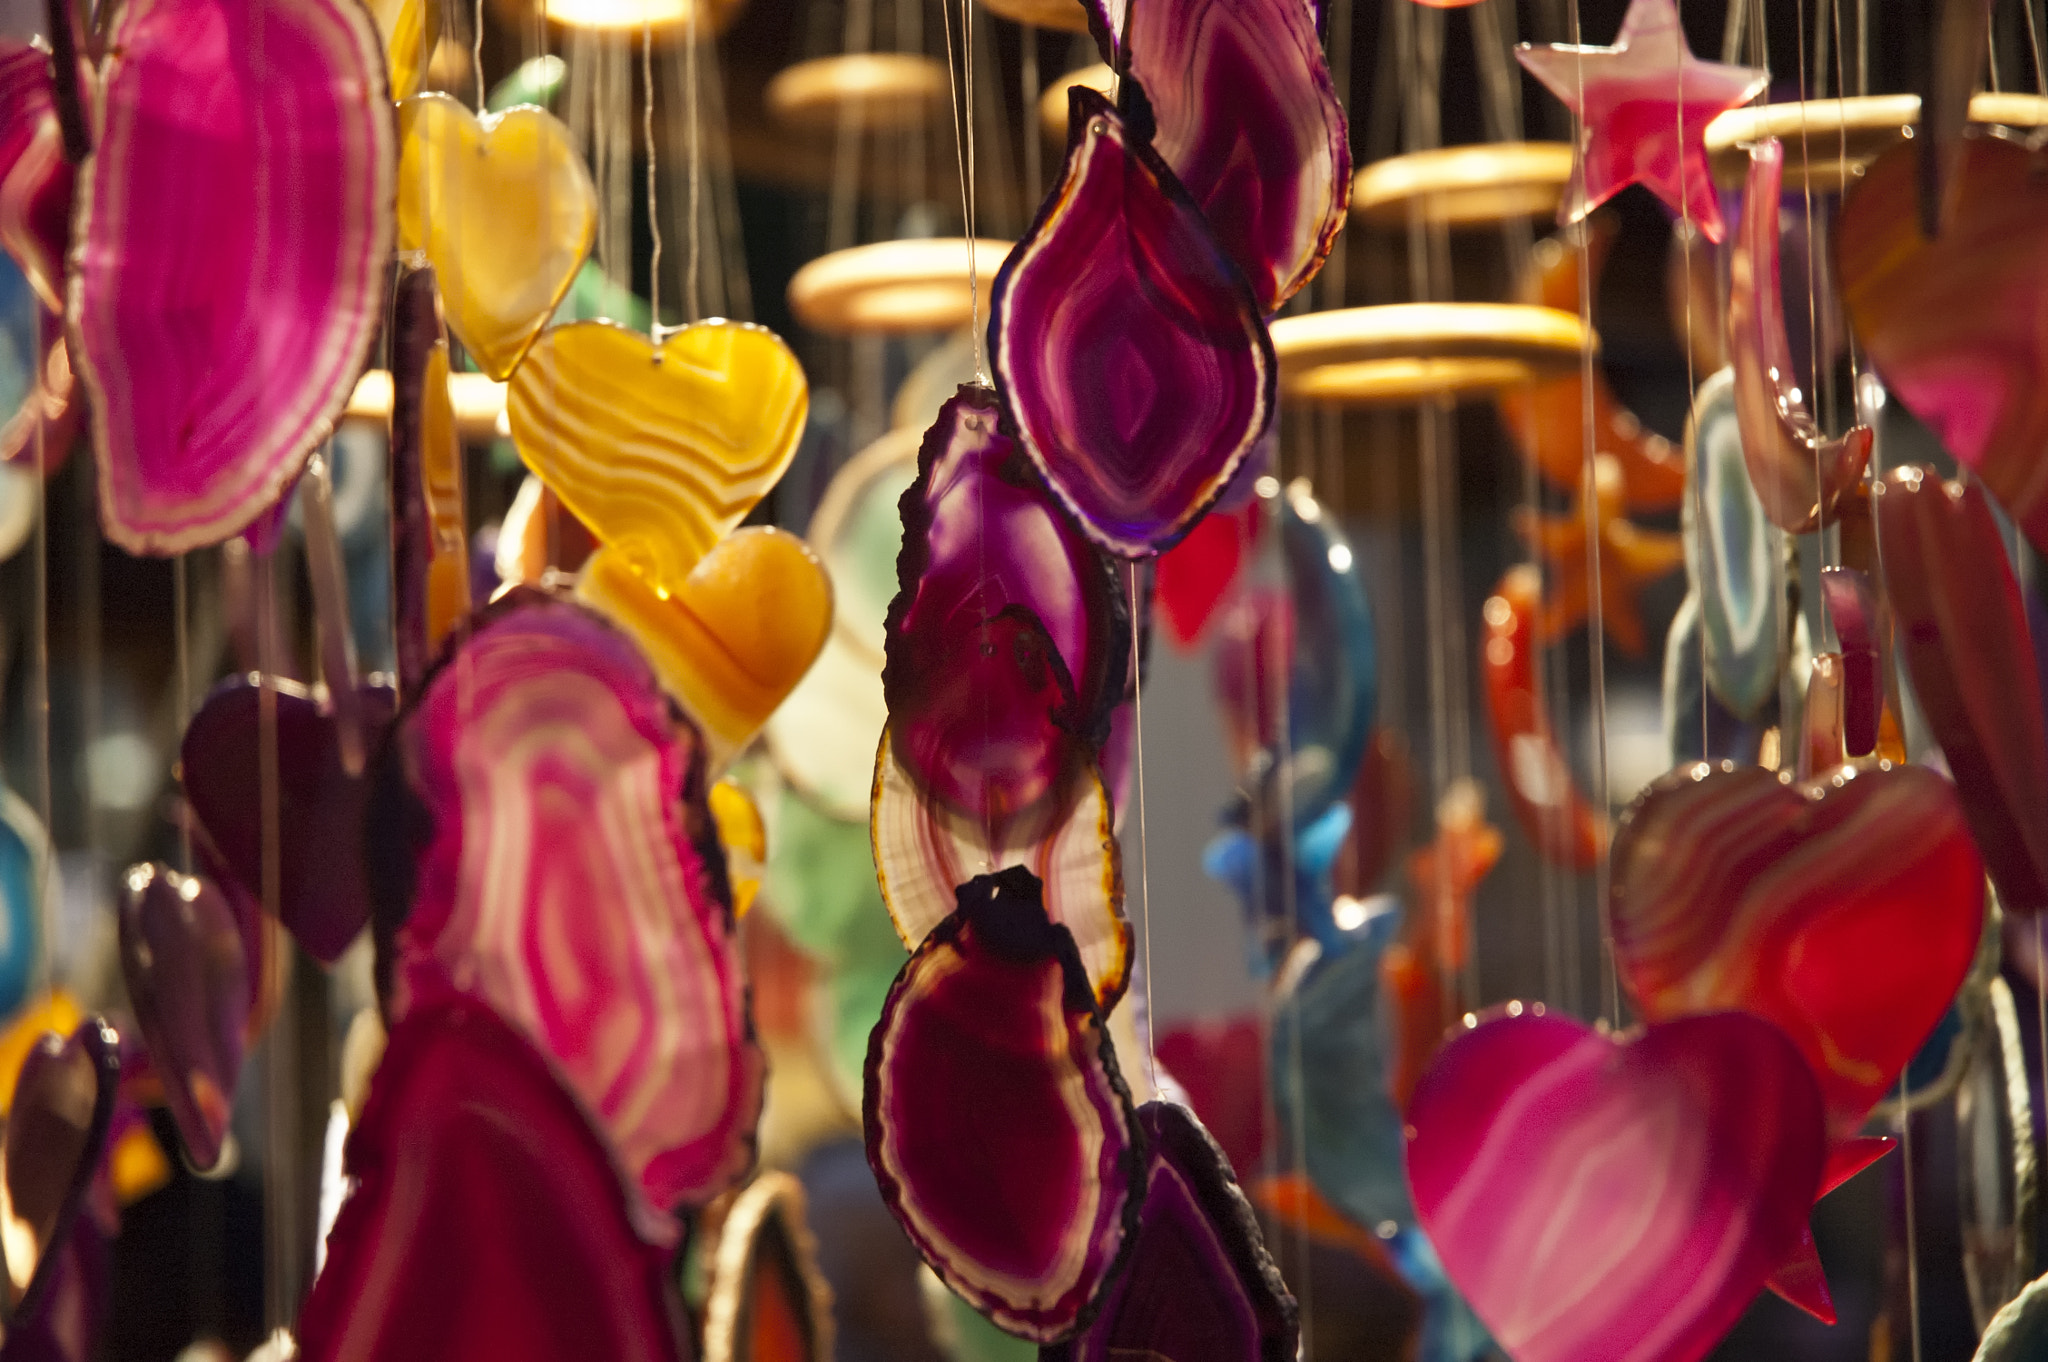 Photograph Decorative hanging mobiles at Birmingham Christmas market by Magdalena Warmuz-Dent on 500px